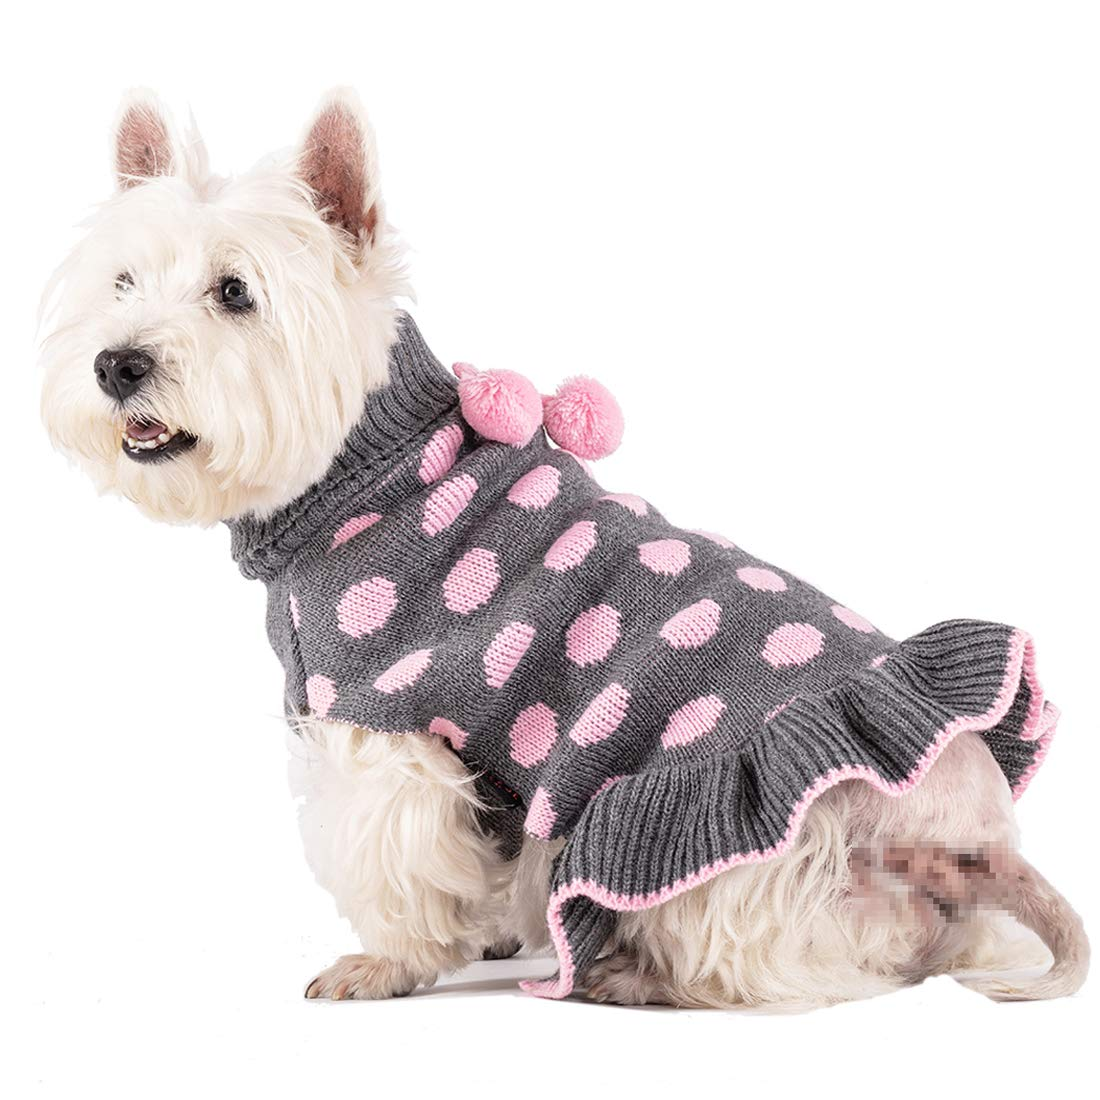 kyeese Dog Sweater Dress Polka Dot Turtleneck Dogs Sweaters Pink Knit Pullover with Pom Pom Ball by kyeese